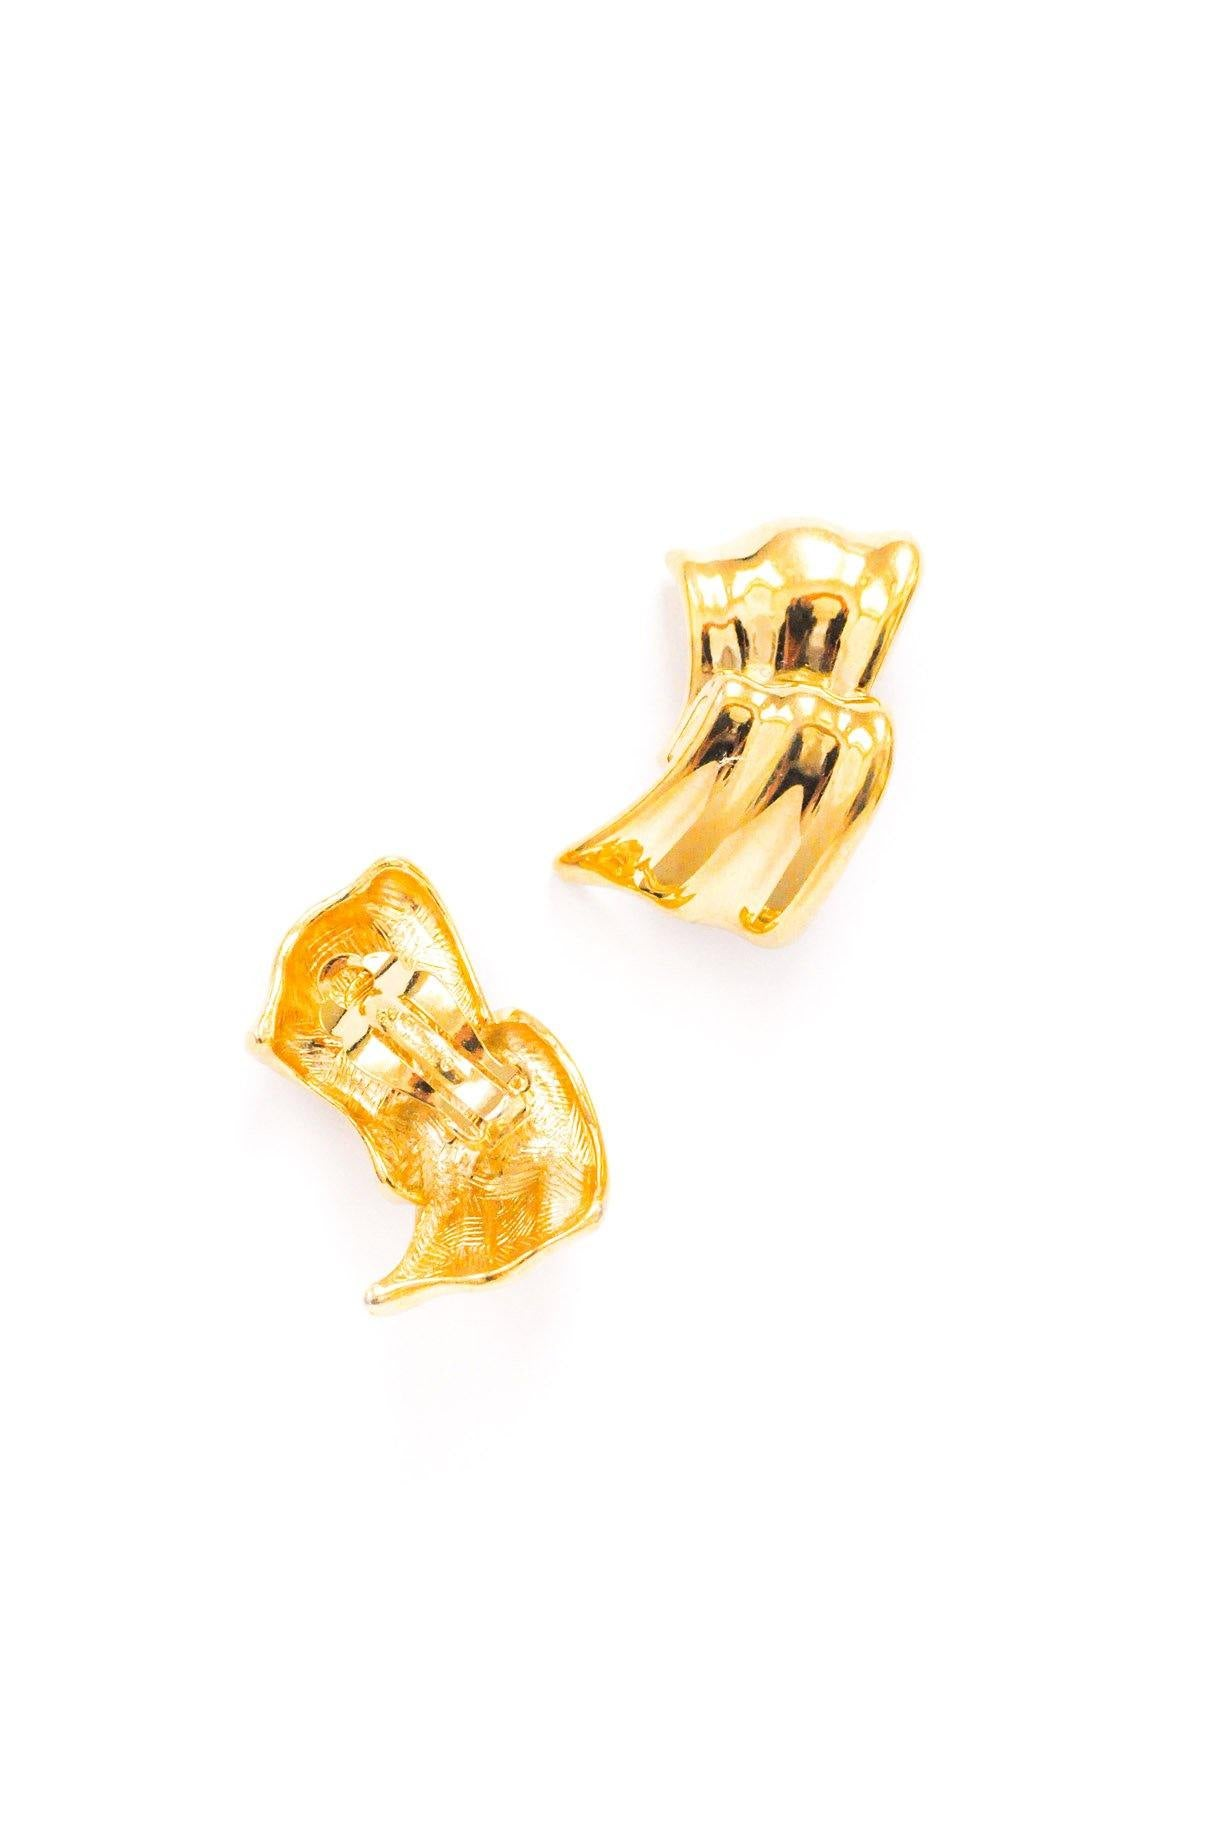 Givenchy Scallop Clip-on Earrings